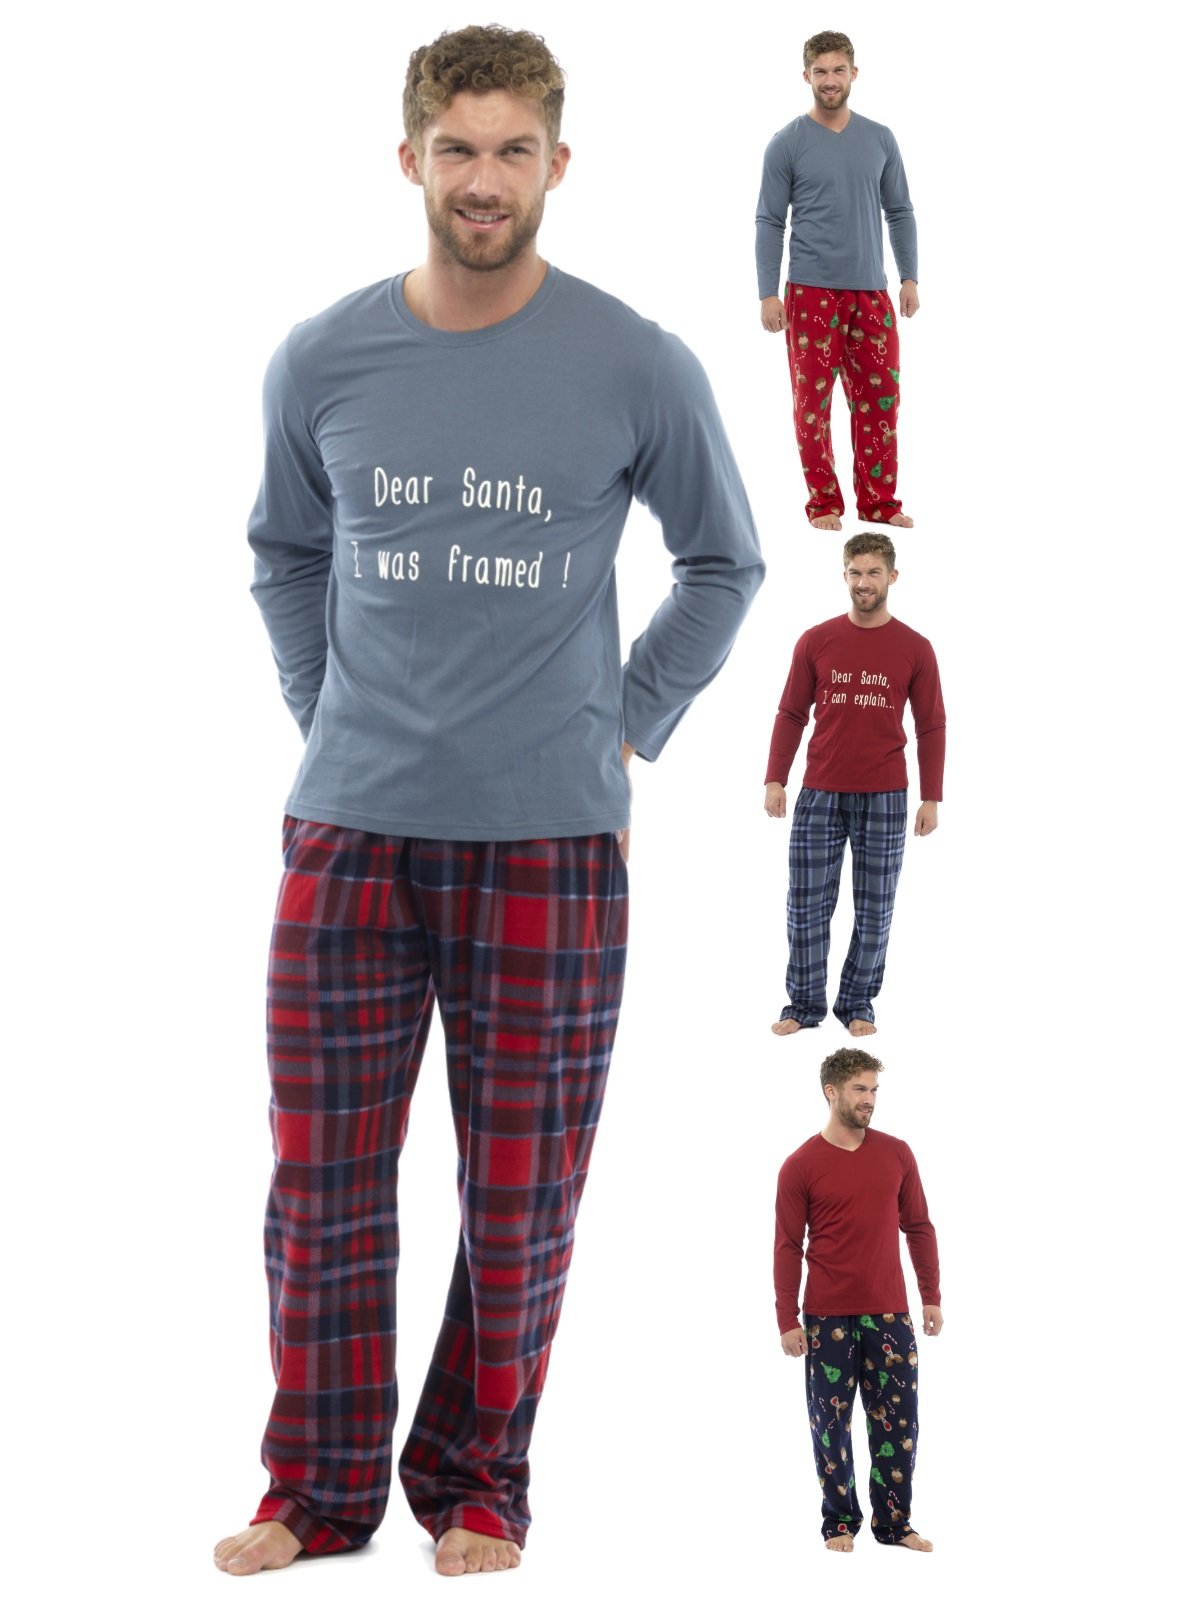 Funny Christmas Pjs.Funny Pajamas Images Reverse Search